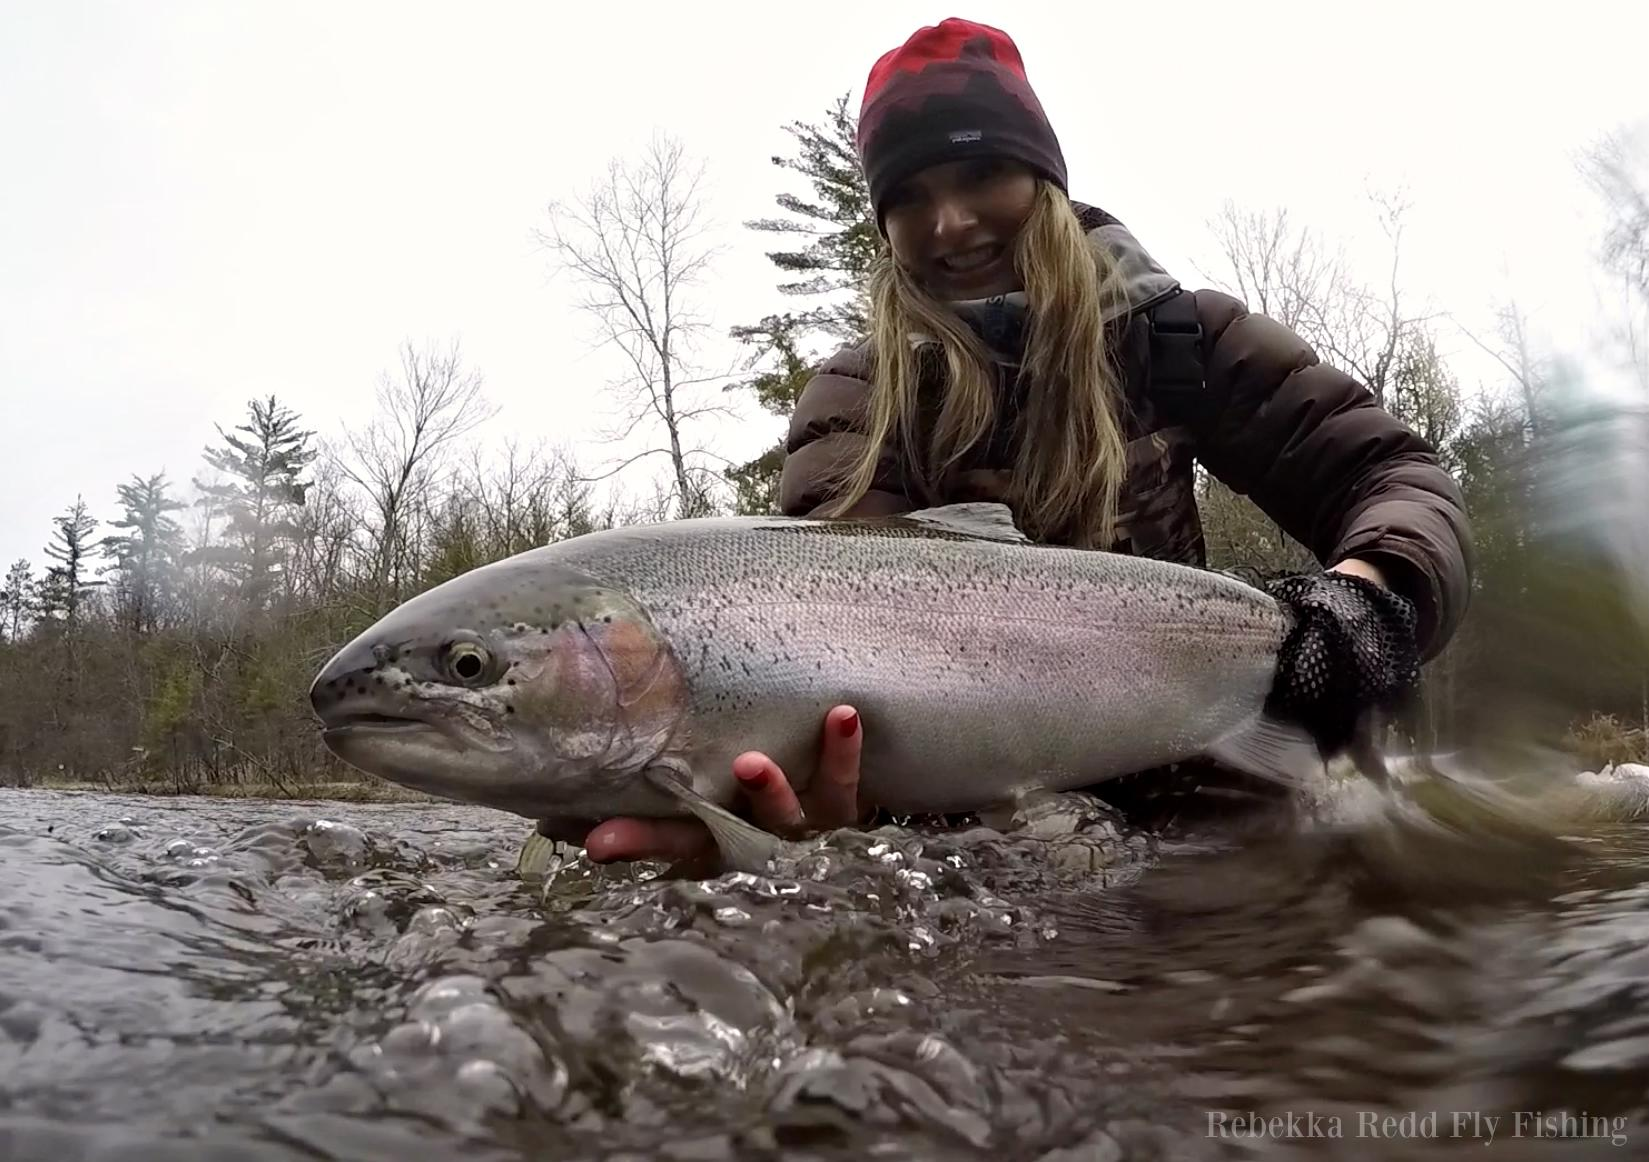 Rebekka Redd Fly Fishing